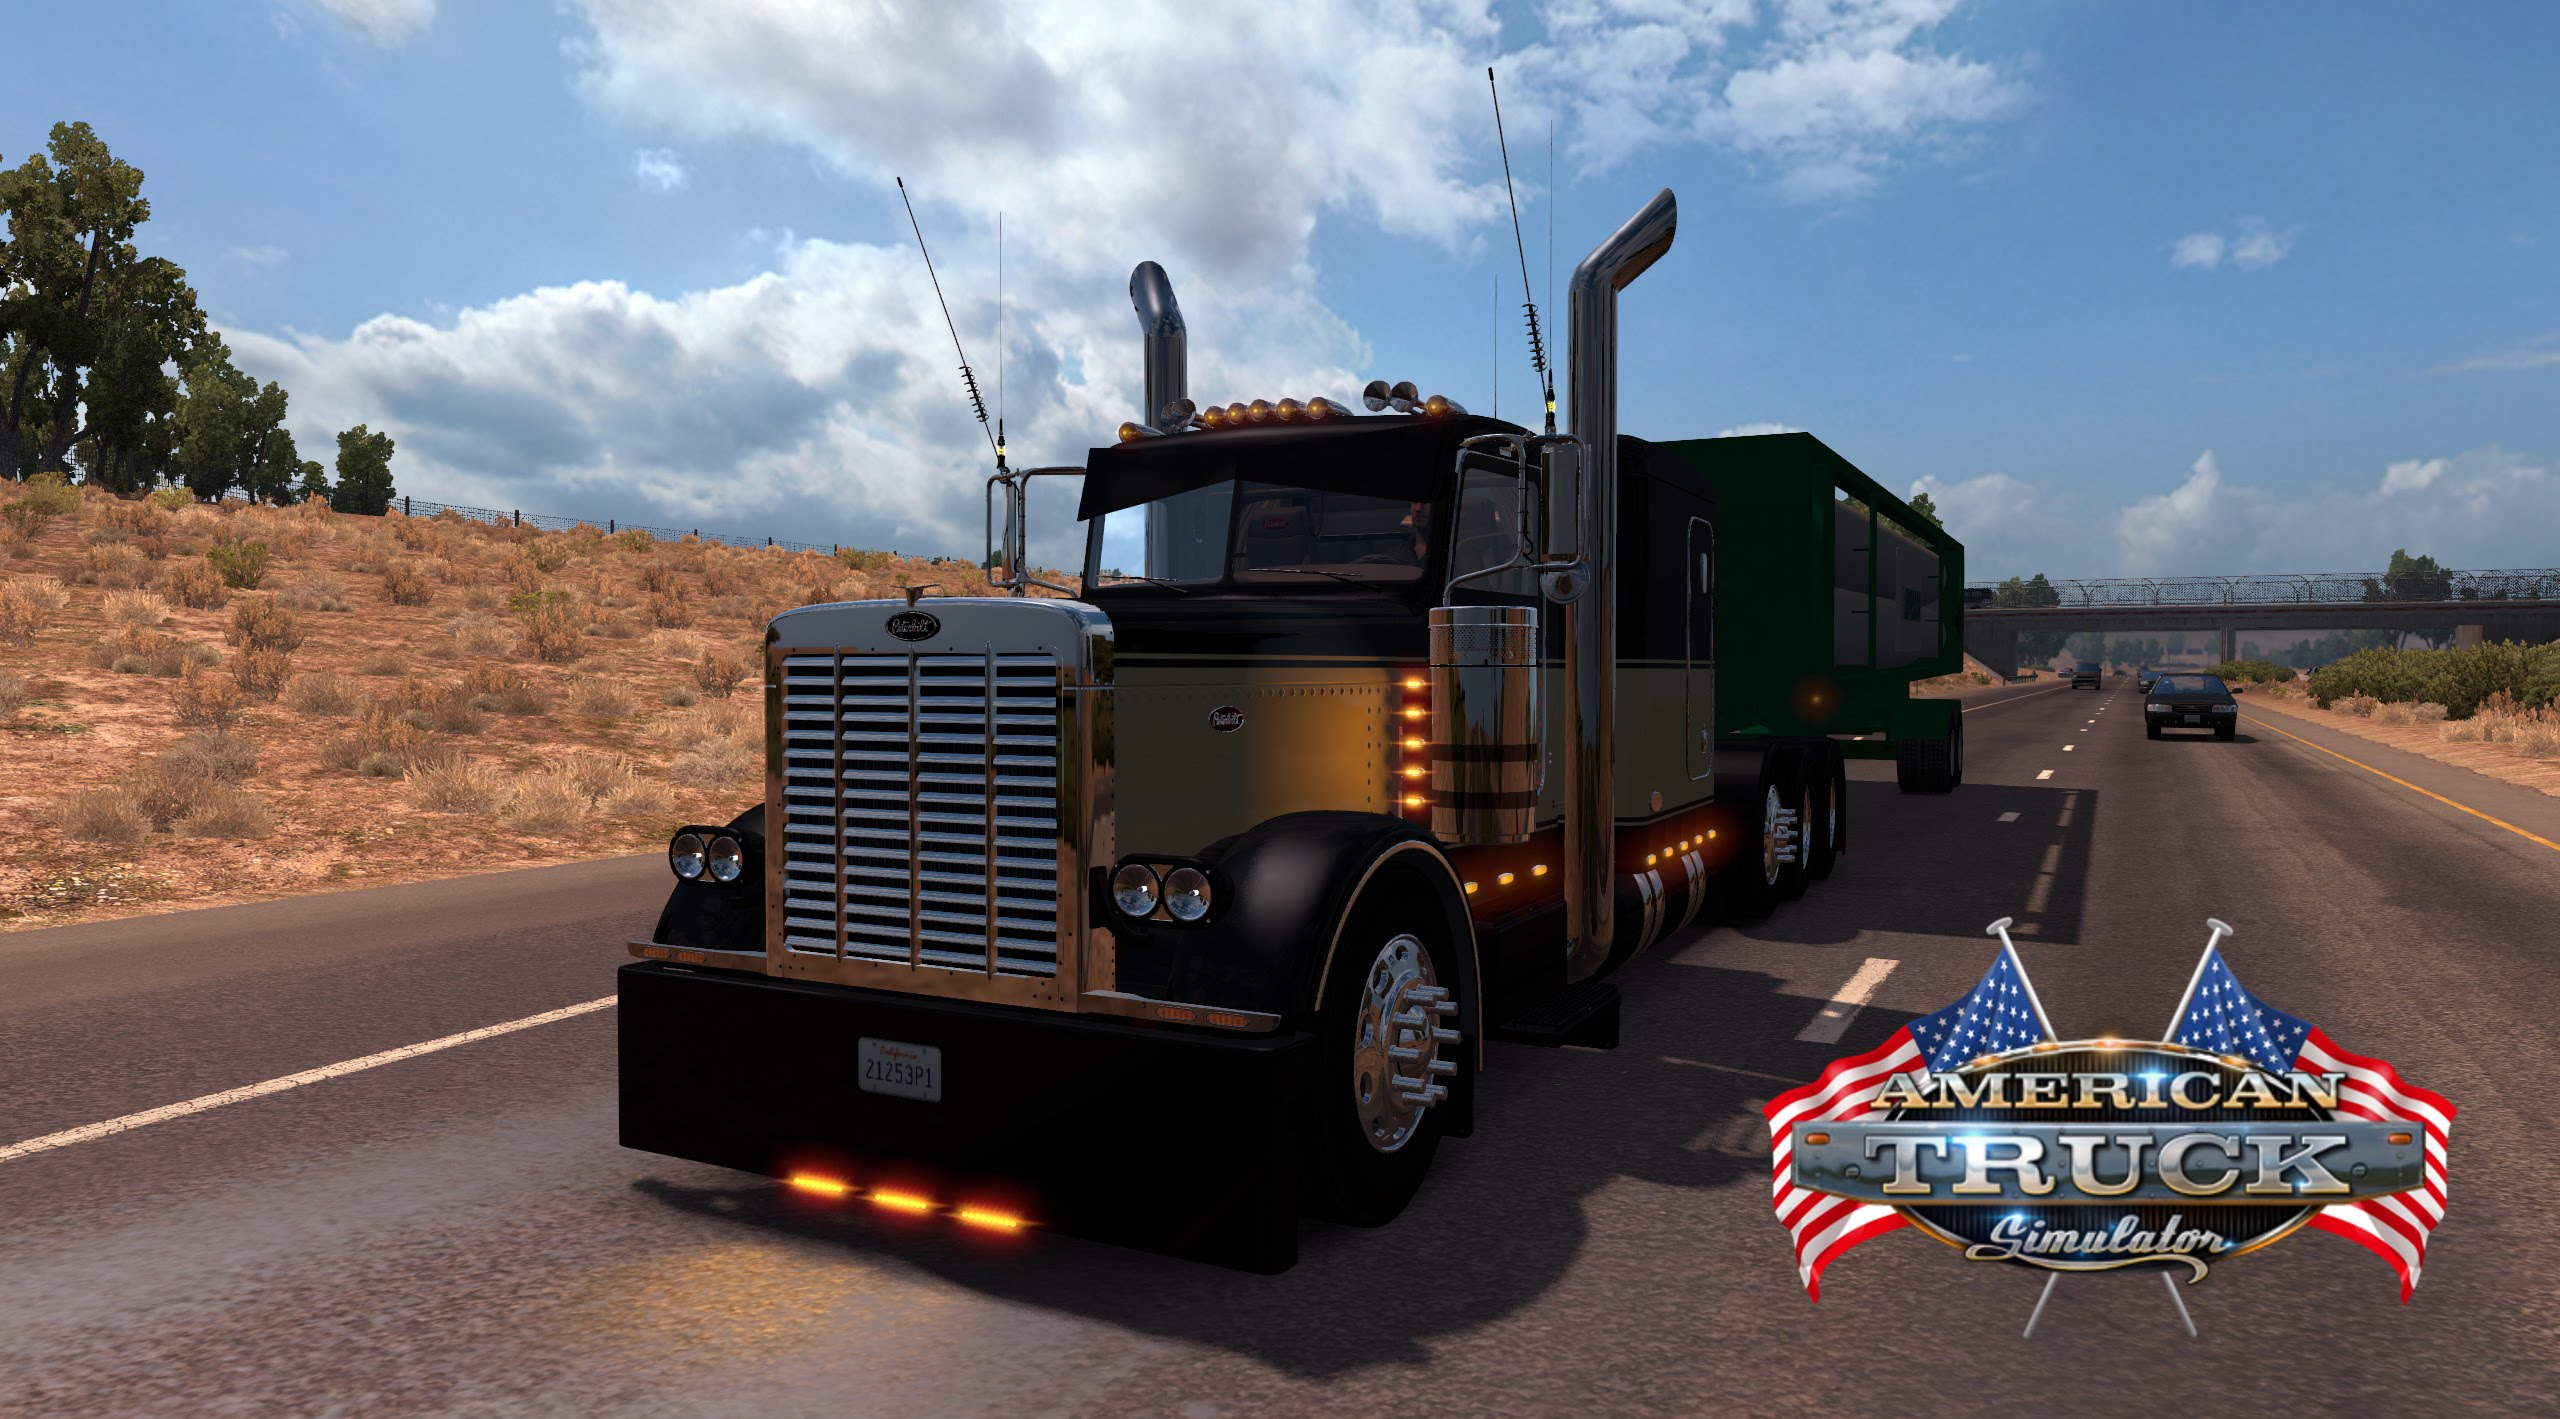 Peterbilt 389 + Interior v3.0 Edited by True Arts Modding (v1.3.x) for ATS